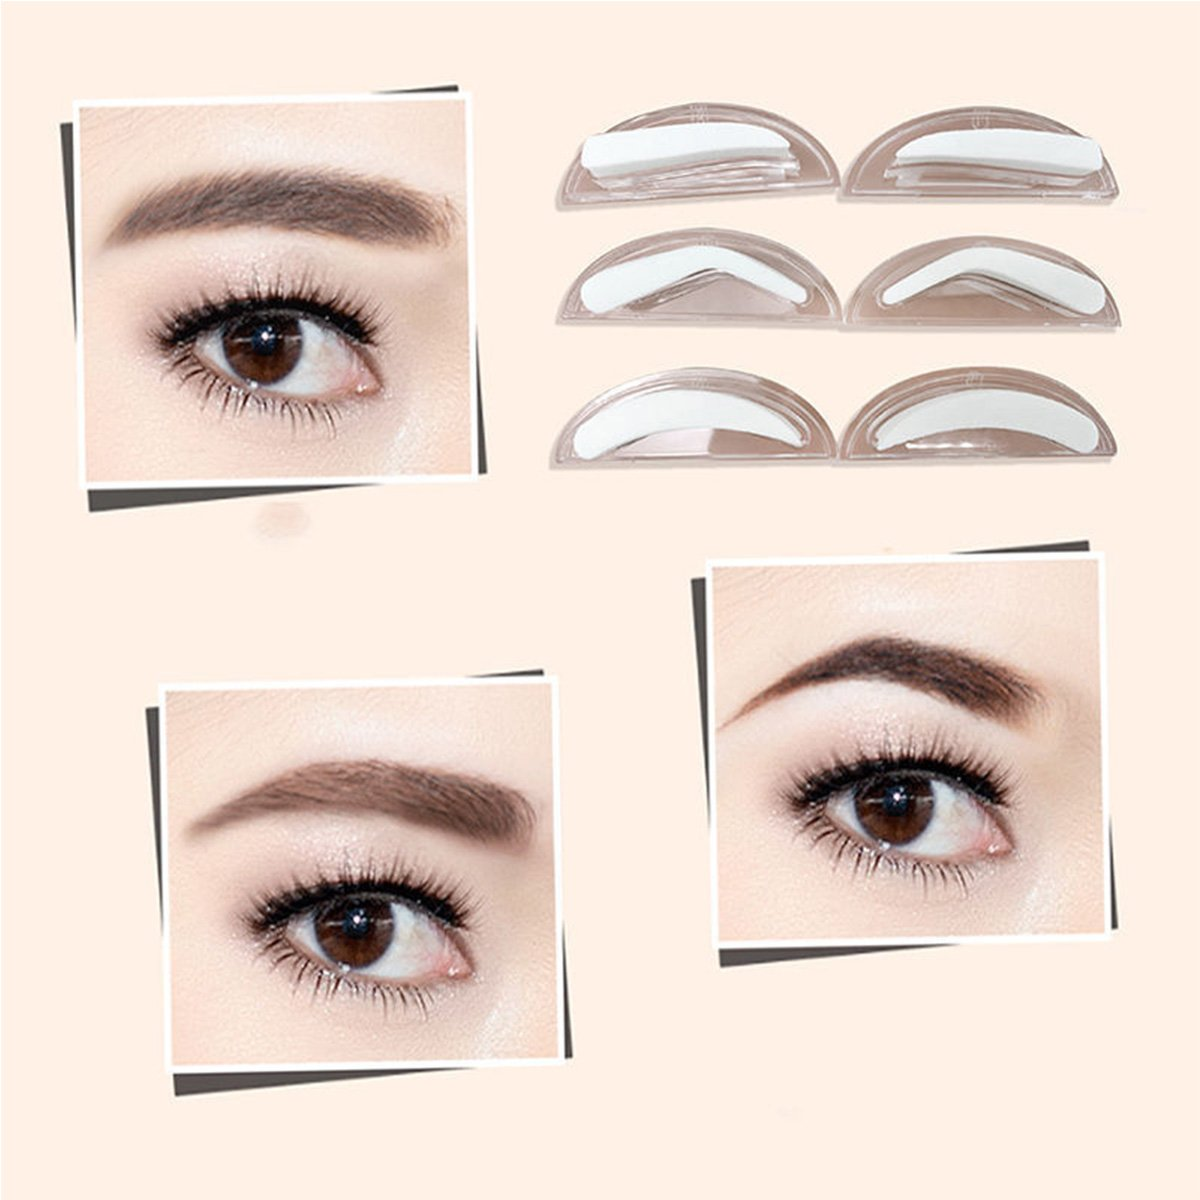 Amazon.com : ONE1X Eyebrow Enhancer Definition Stamp Brow Stamp Only POWDER PALETTE IS NOT INCLUDED : Beauty